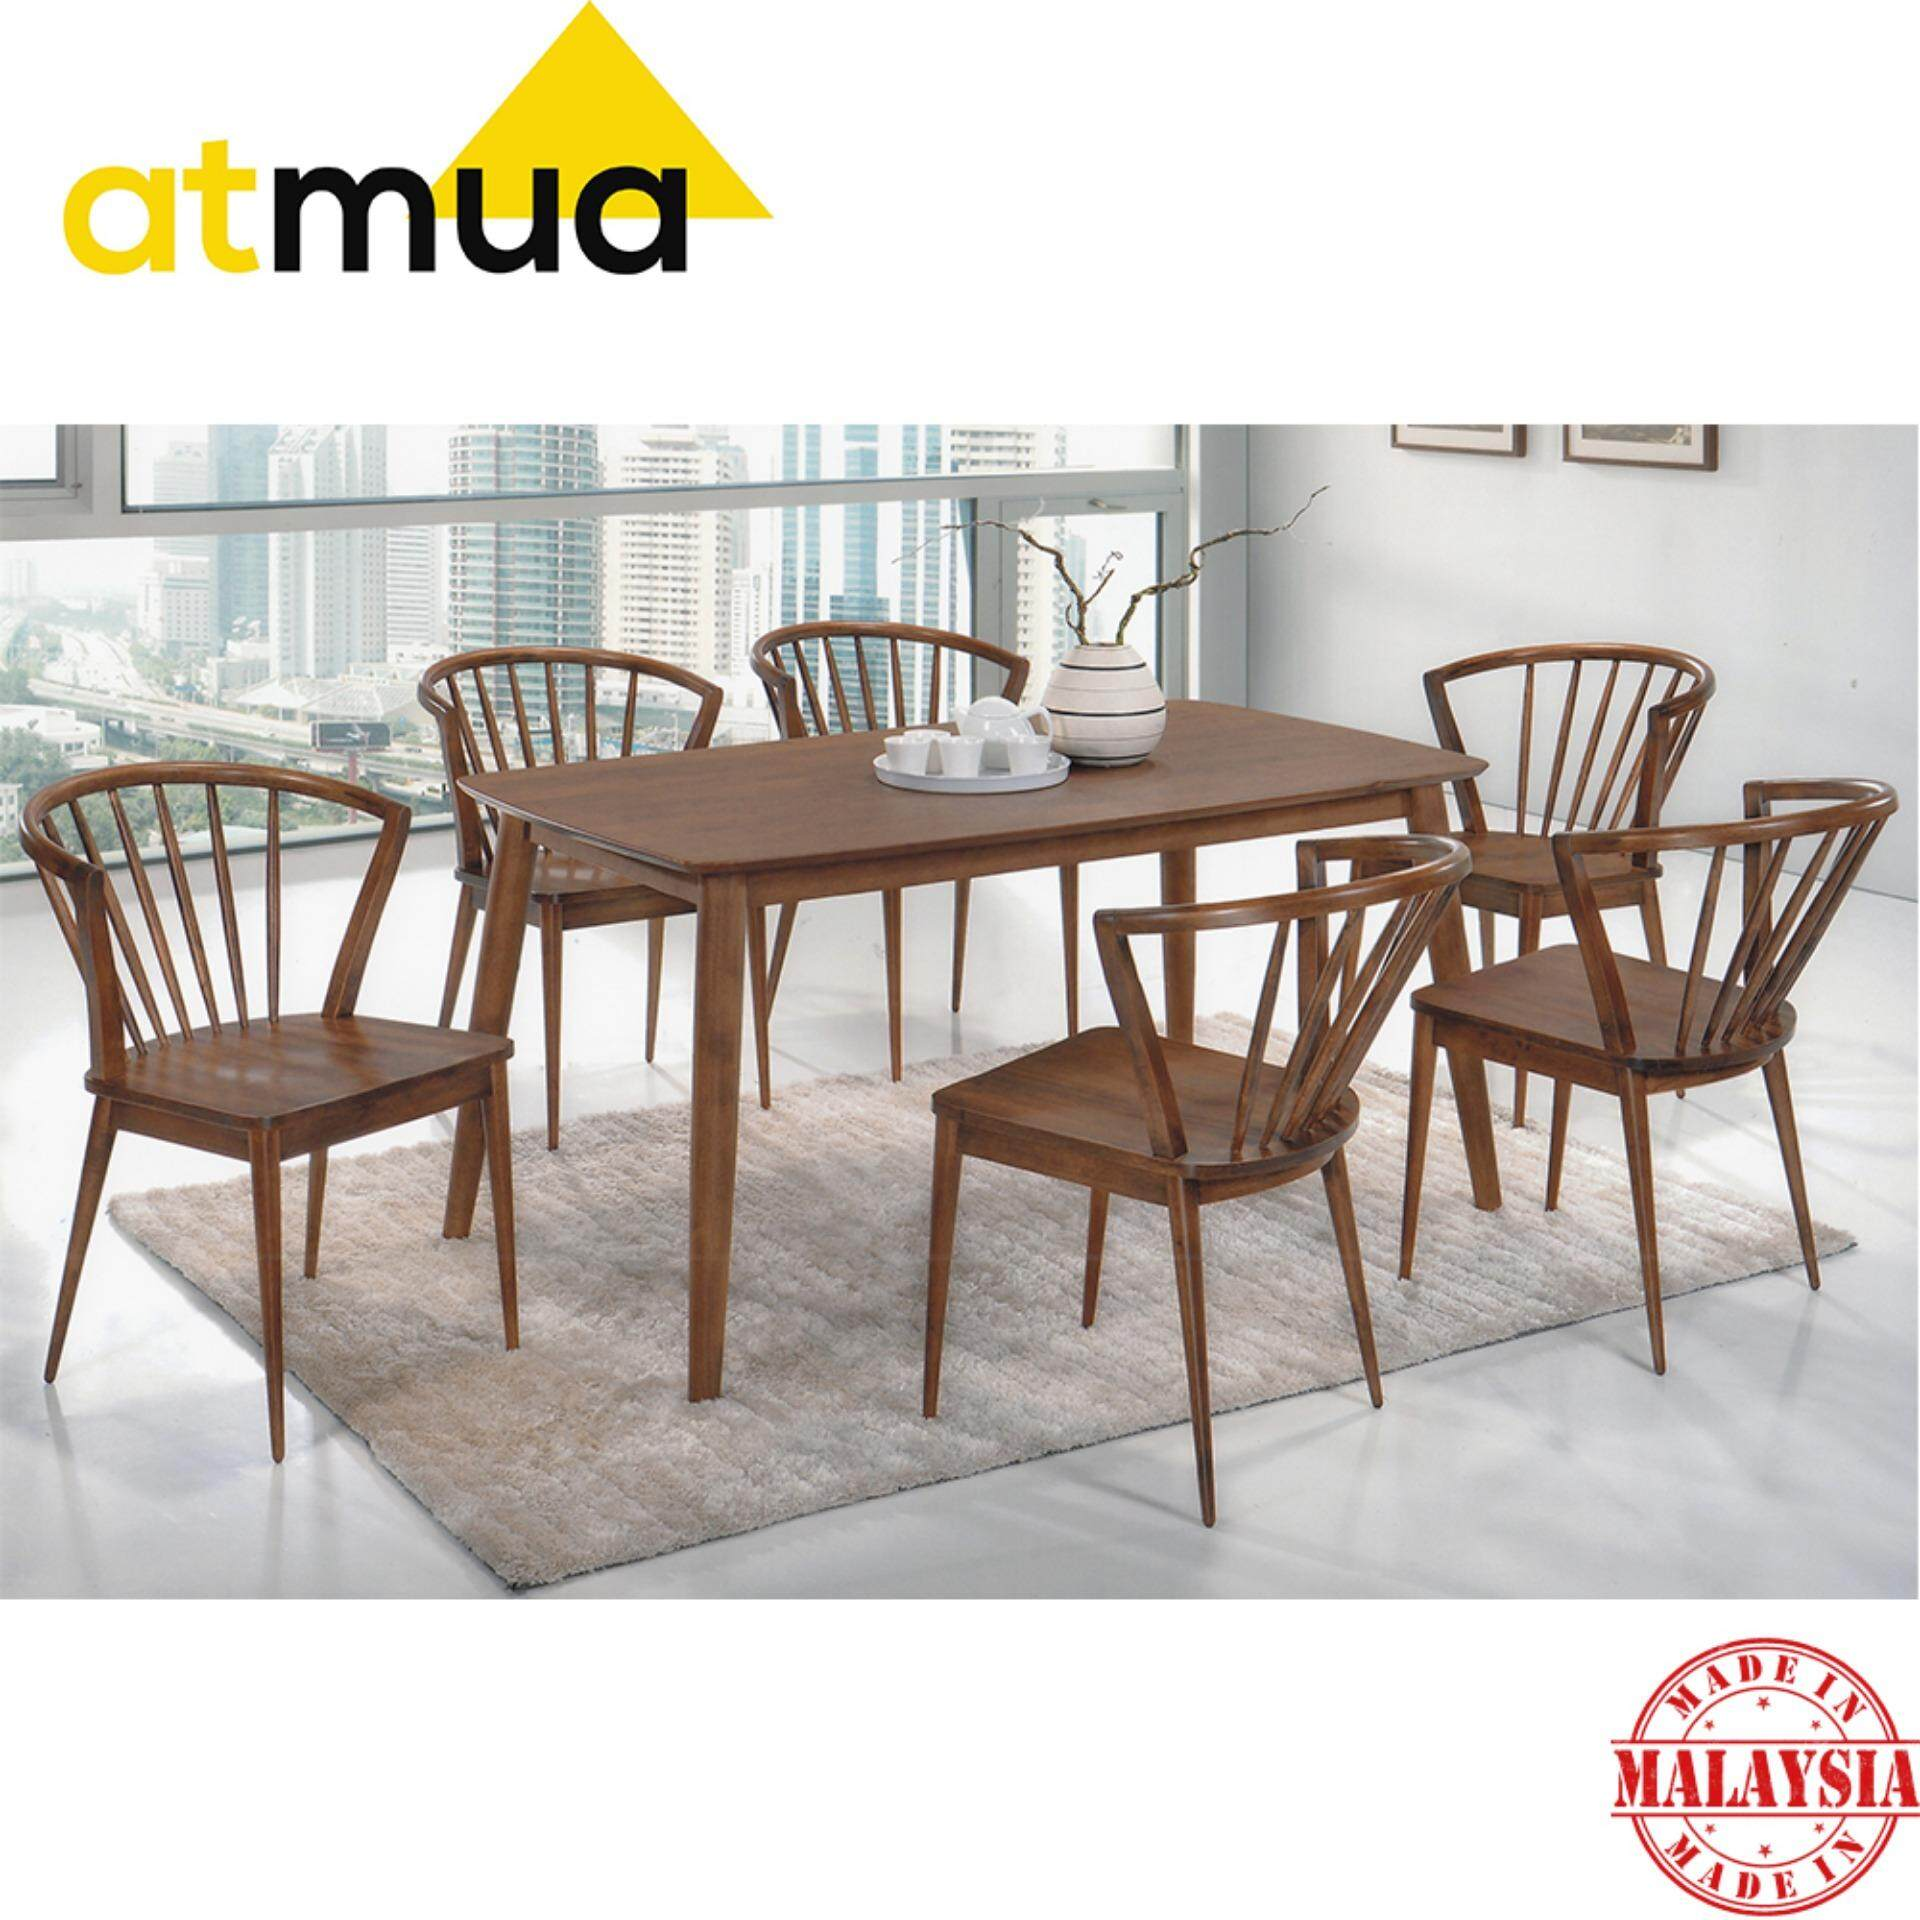 Atmua Blush Dining Set (1 Table + 6 Chair) - Scandinavian Style [Full Solid Rubber Wood]